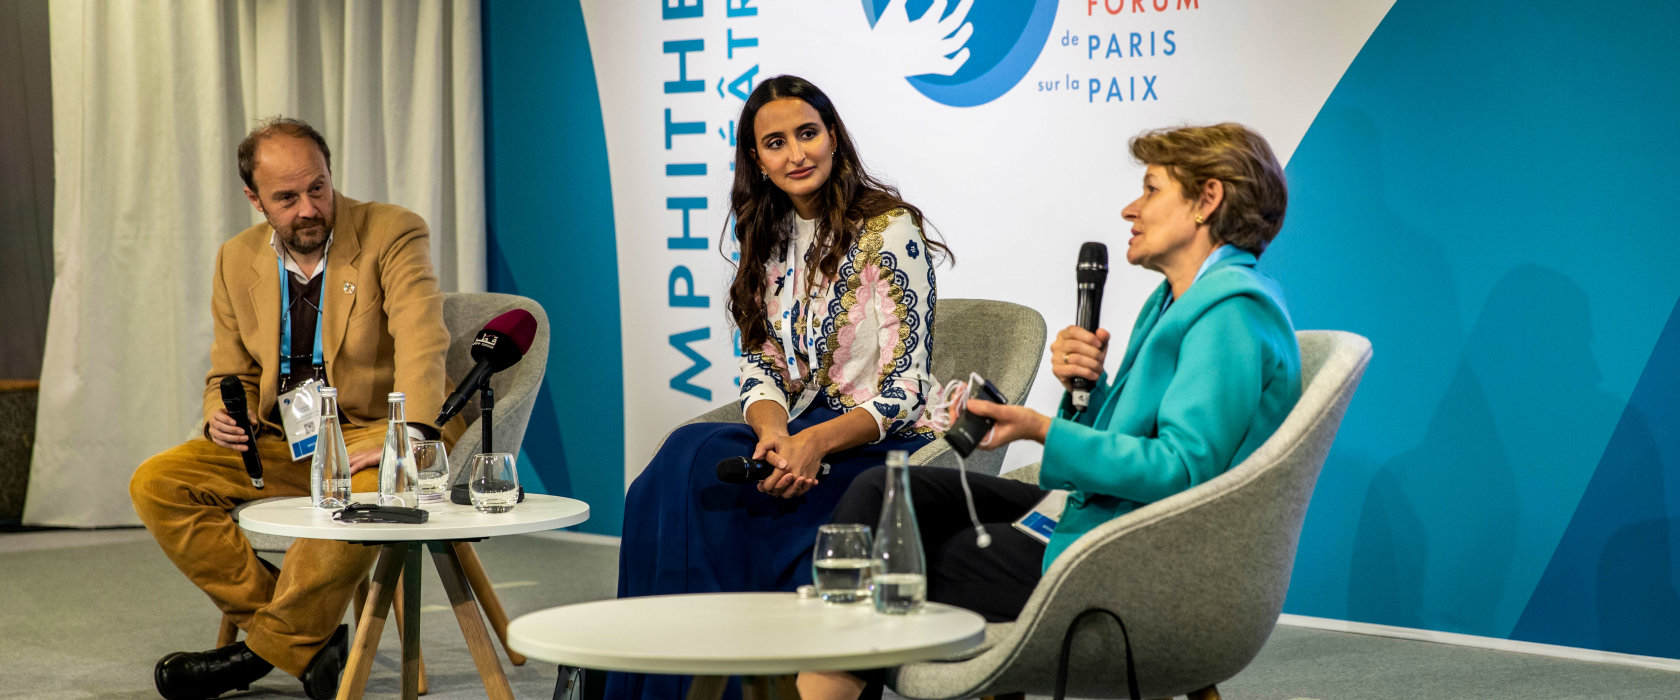 AI should be a gateway to personalized education, Her Excellency Sheikha Hind tells Paris Peace Forum